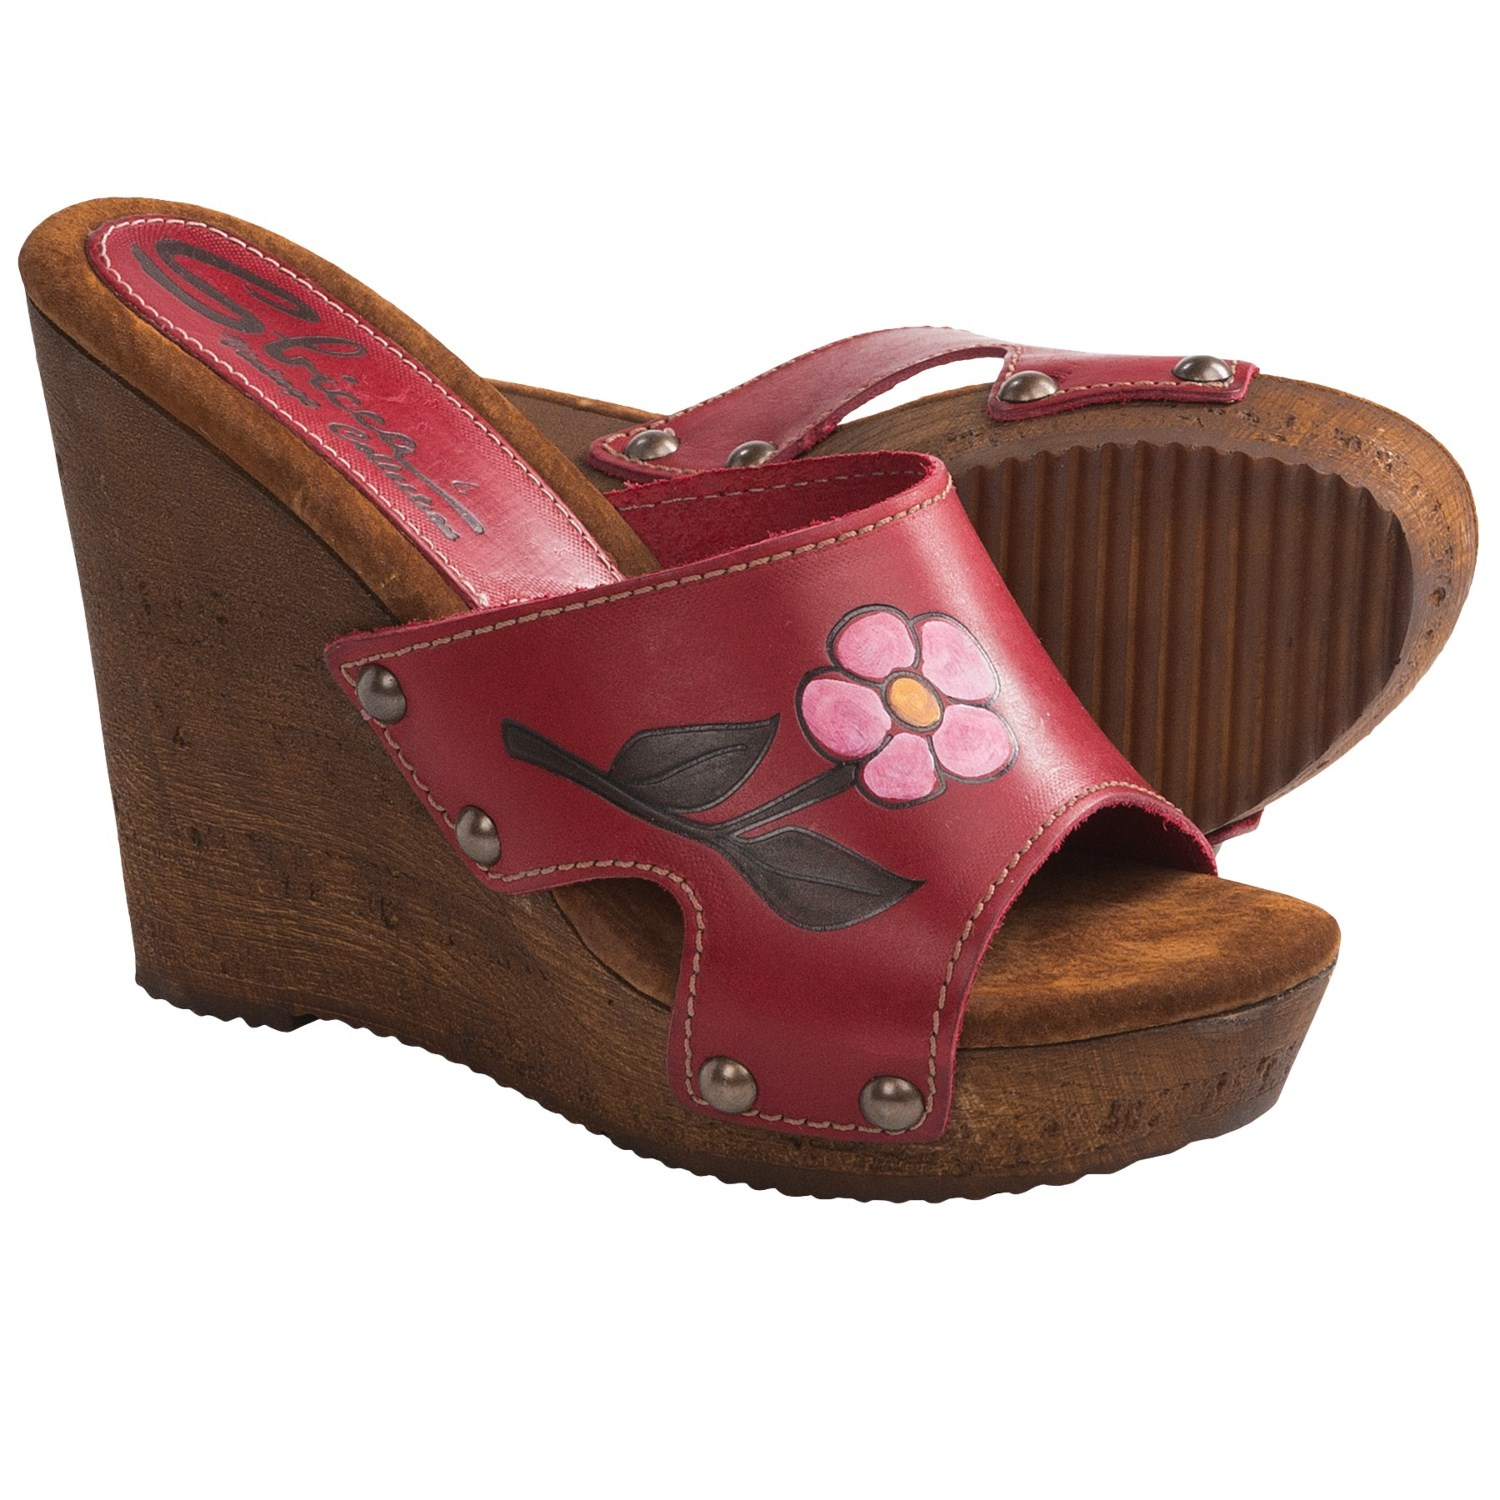 Sbicca Leaf Wedge Sandals (For Women) in Red